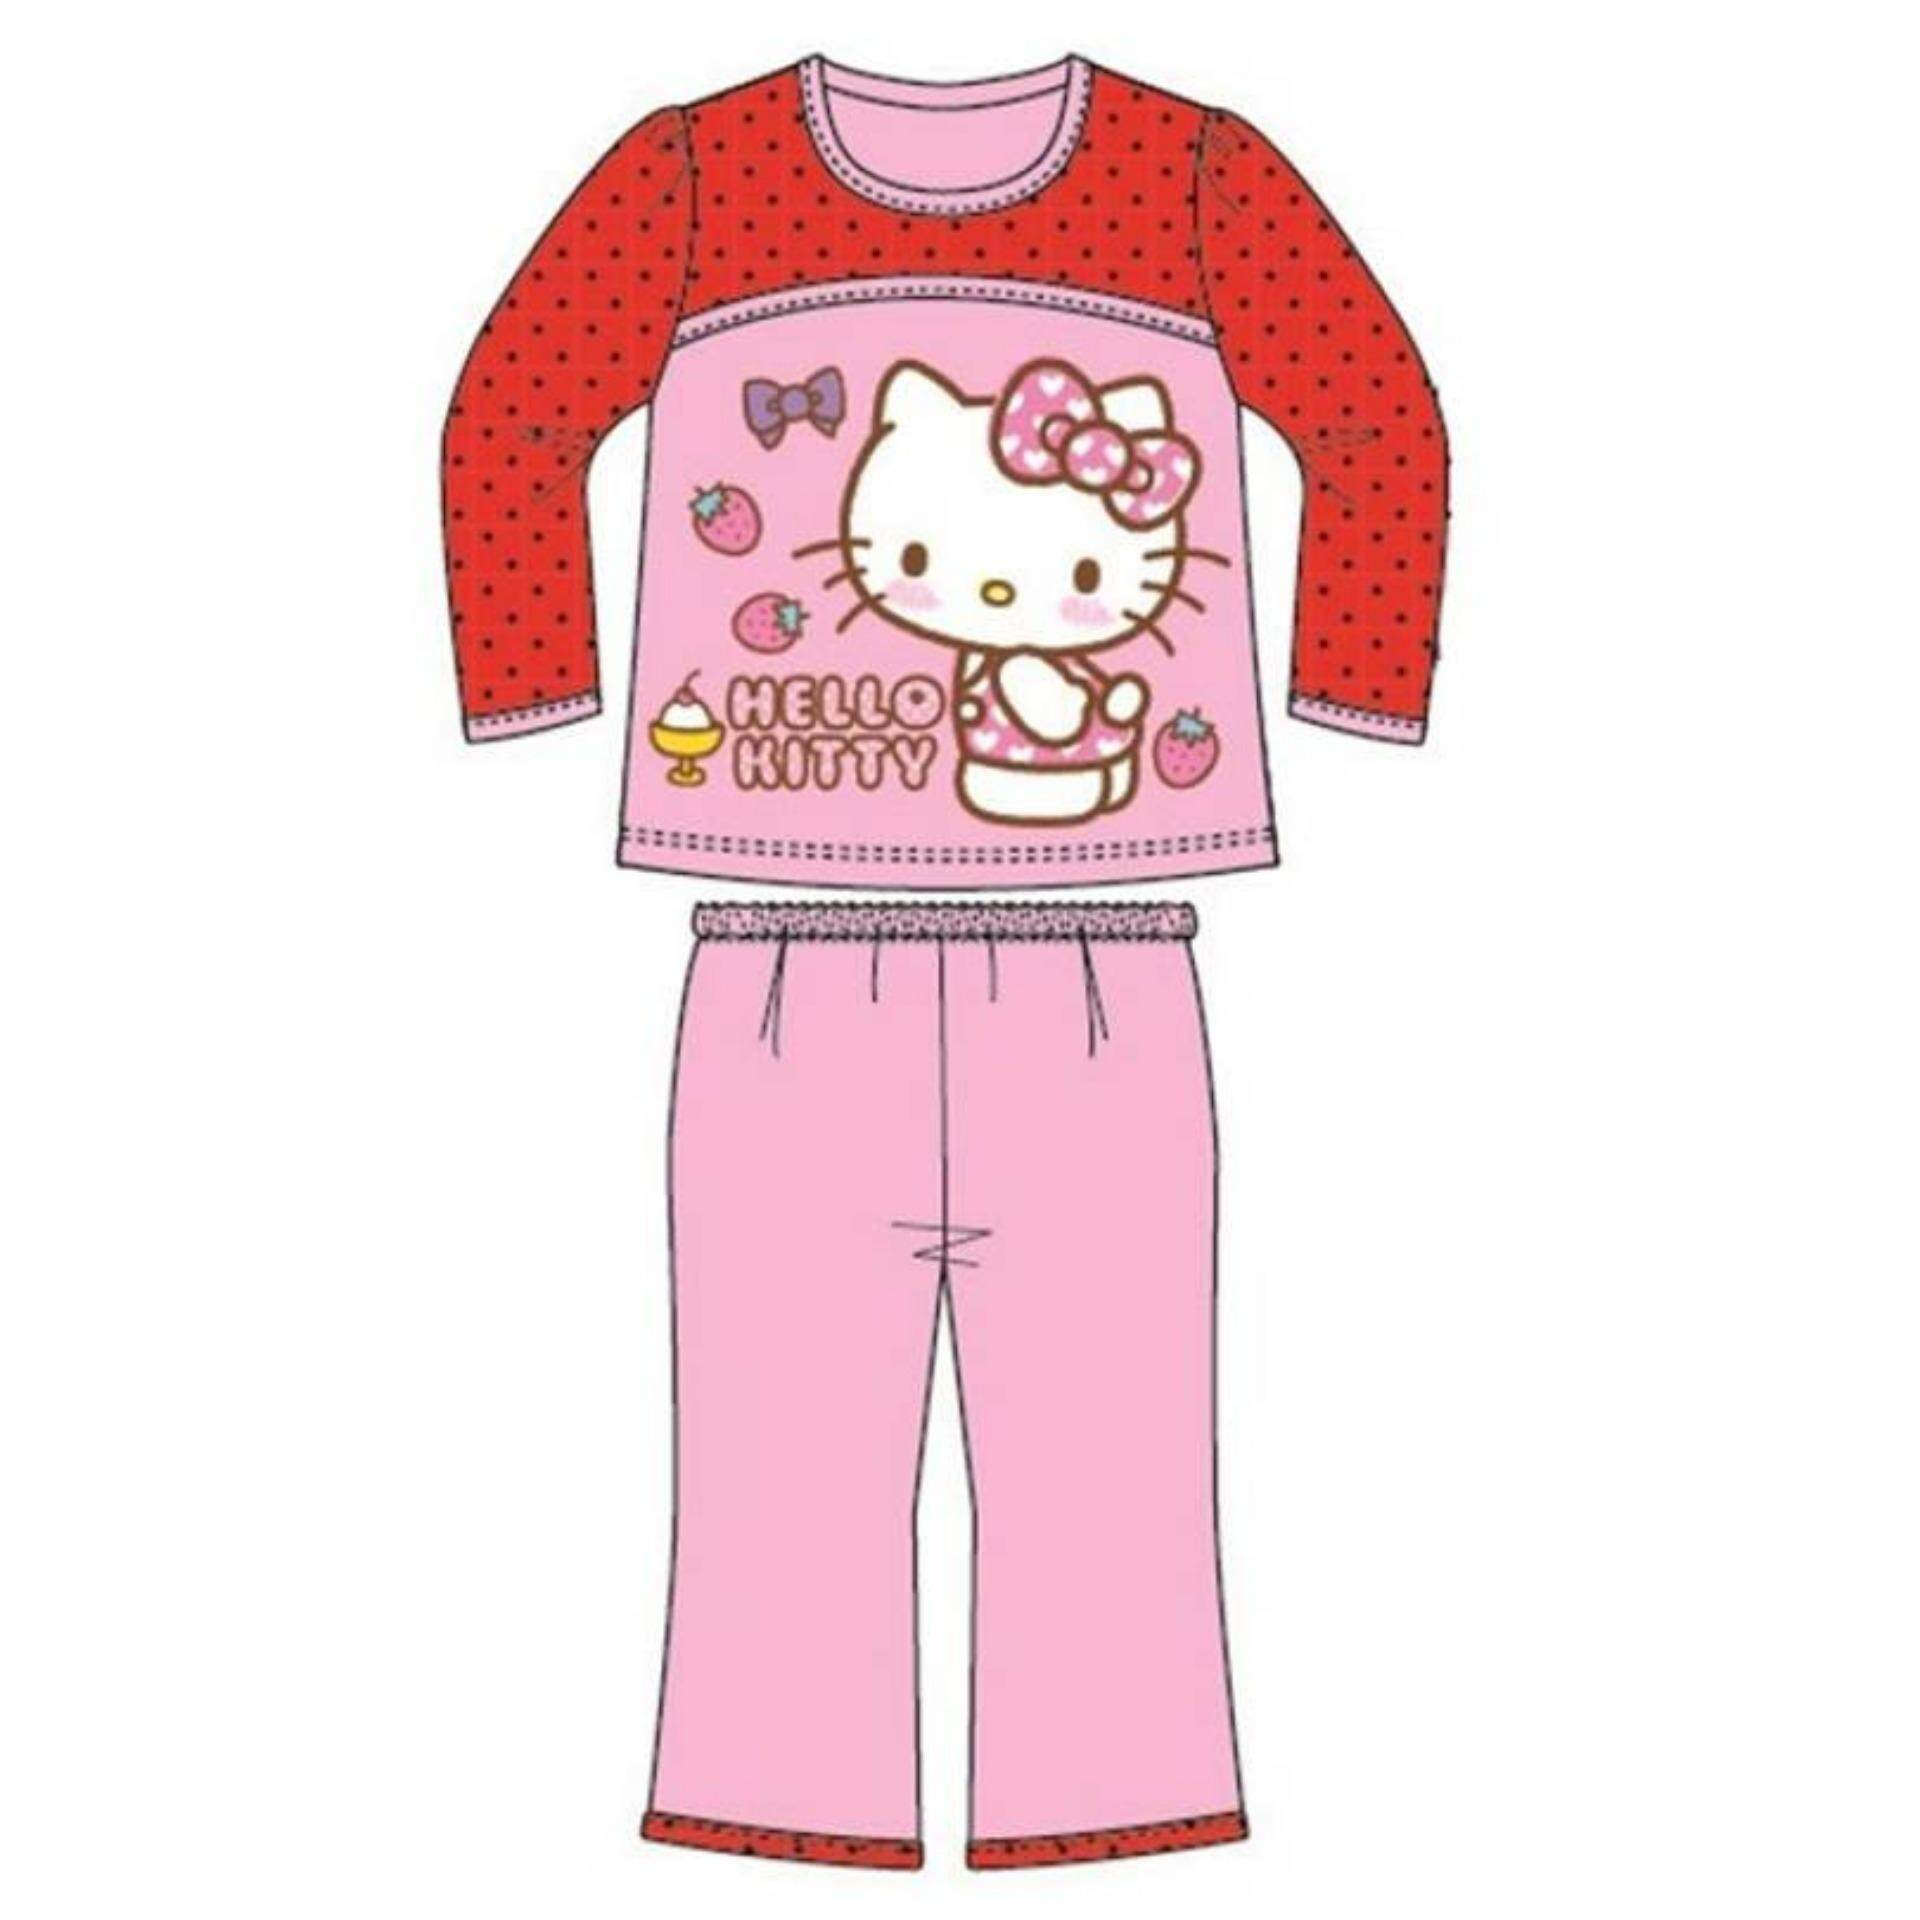 Sanrio Hello Kitty Long Sleeve Homewear 100% Cotton 1yrs to 5yrs - Pink and Red Colour